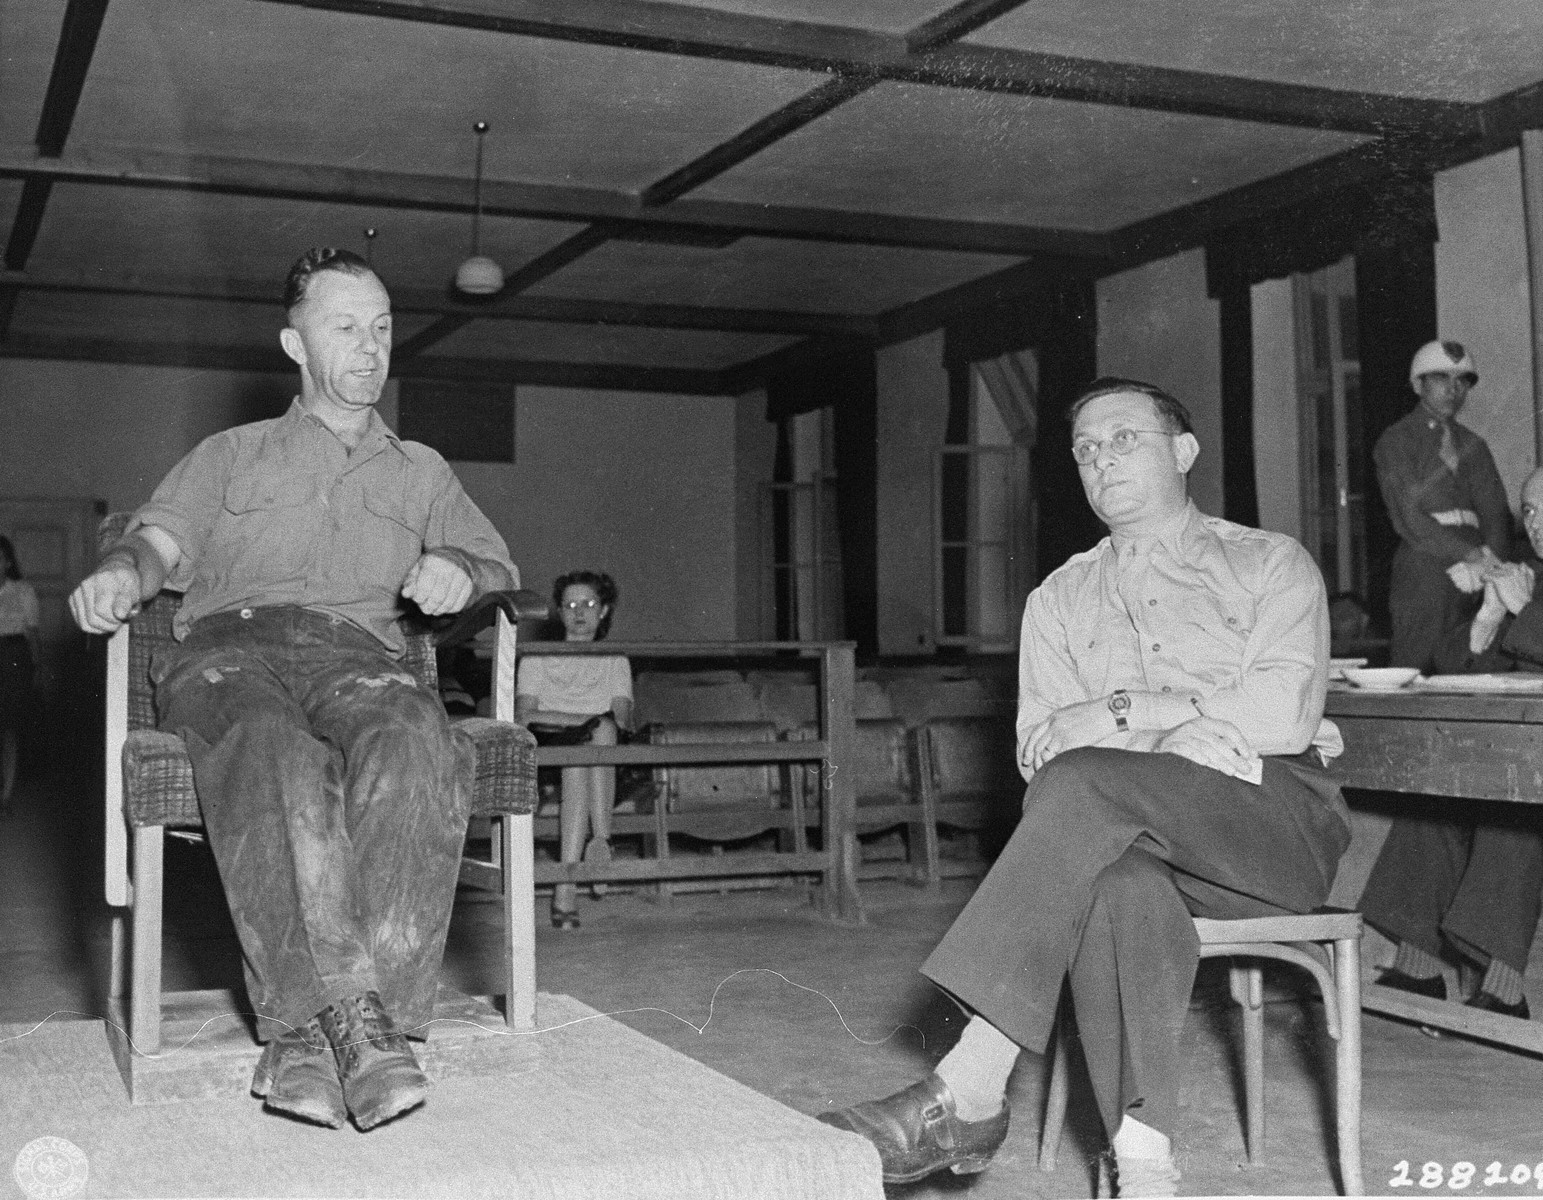 Hermann Grossmann, a former SS lieutenant, testifies in his own defense at the trial of 31 former camp personnel and prisoners from Buchenwald.  On the right is the interpreter, Rudolph Nathanson.